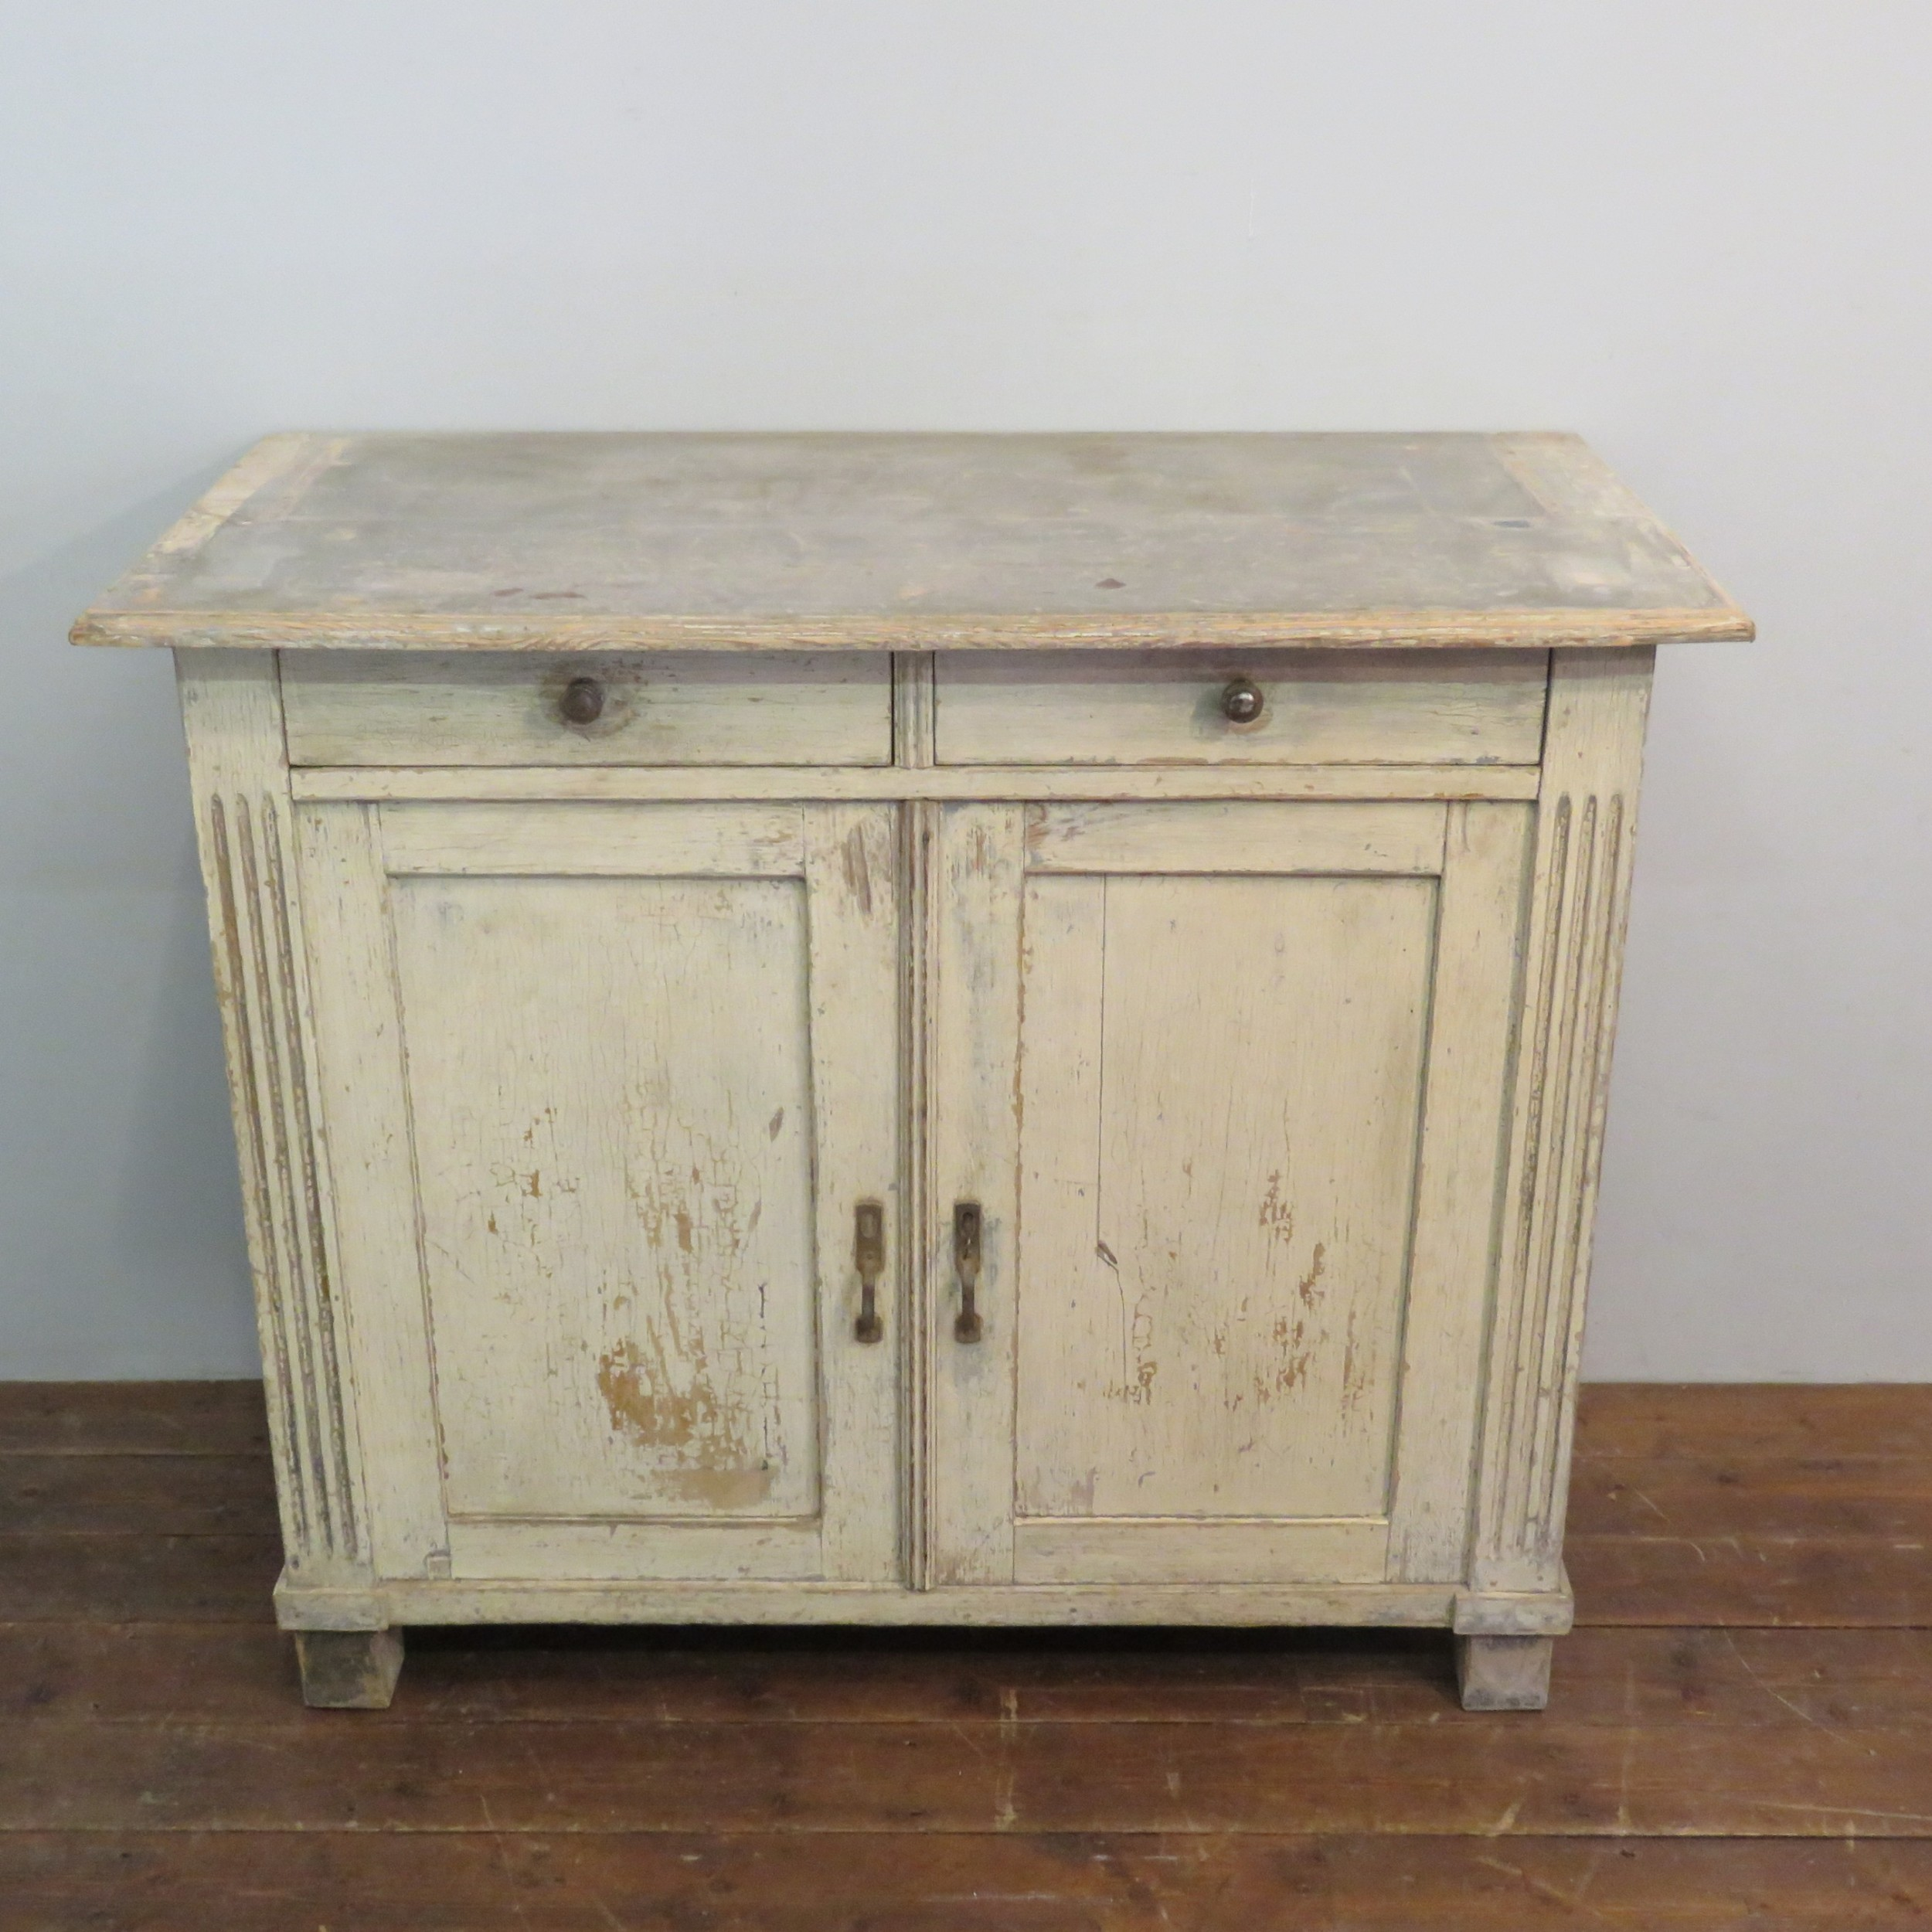 antique pine kitchen dresser base in original distressed paint finish 1860